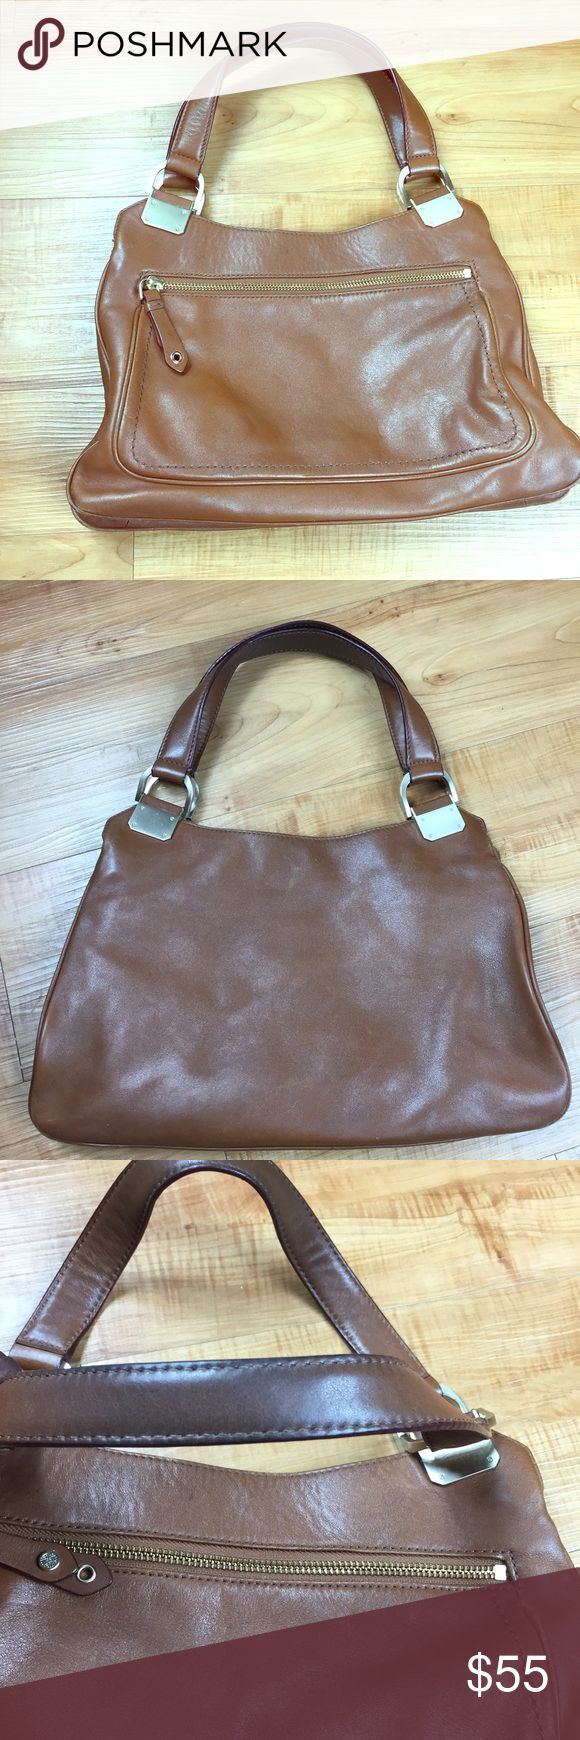 Tan Brown Cole Haan Purse Handbag w/ Gold Hardware Tan Brown Cole Haan Purse Handbag w/ Gold Hardware.  Very good condition Lining is clean Piping is slightly exposed. Please see photos.   Thanks for looking! Cole Haan Bags Satchels